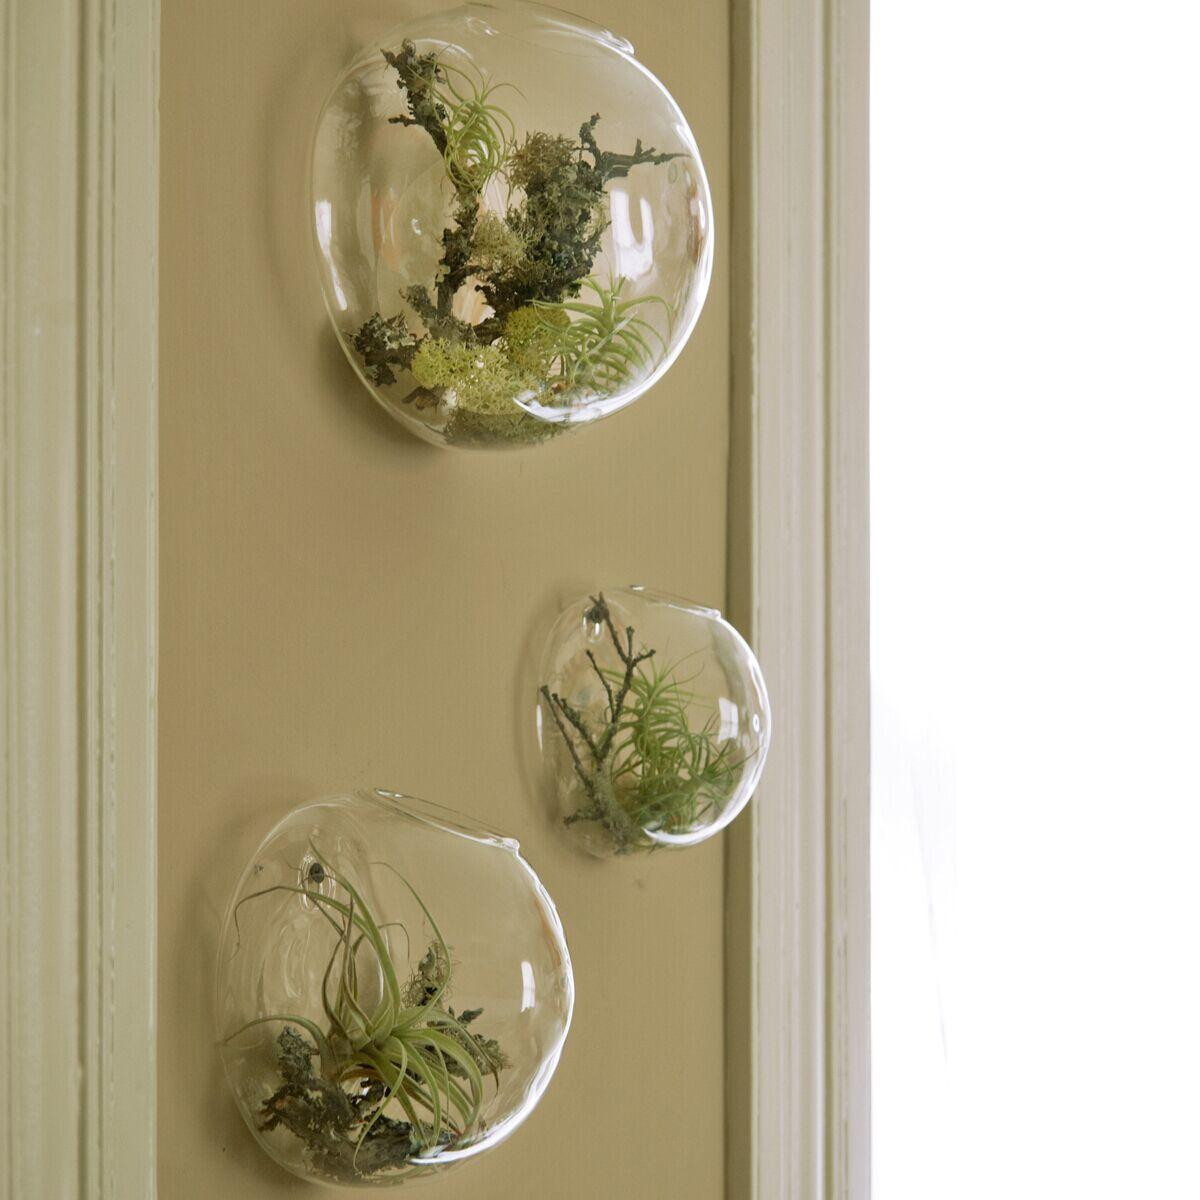 3 piece glass vase set of wall bubble terrariums glass wall vase for flowers indoor plants throughout wall bubble terrariums glass wall vase for flowers indoor plants wall mounted planter for succulents air plant holders home decor inexpensive floor vases